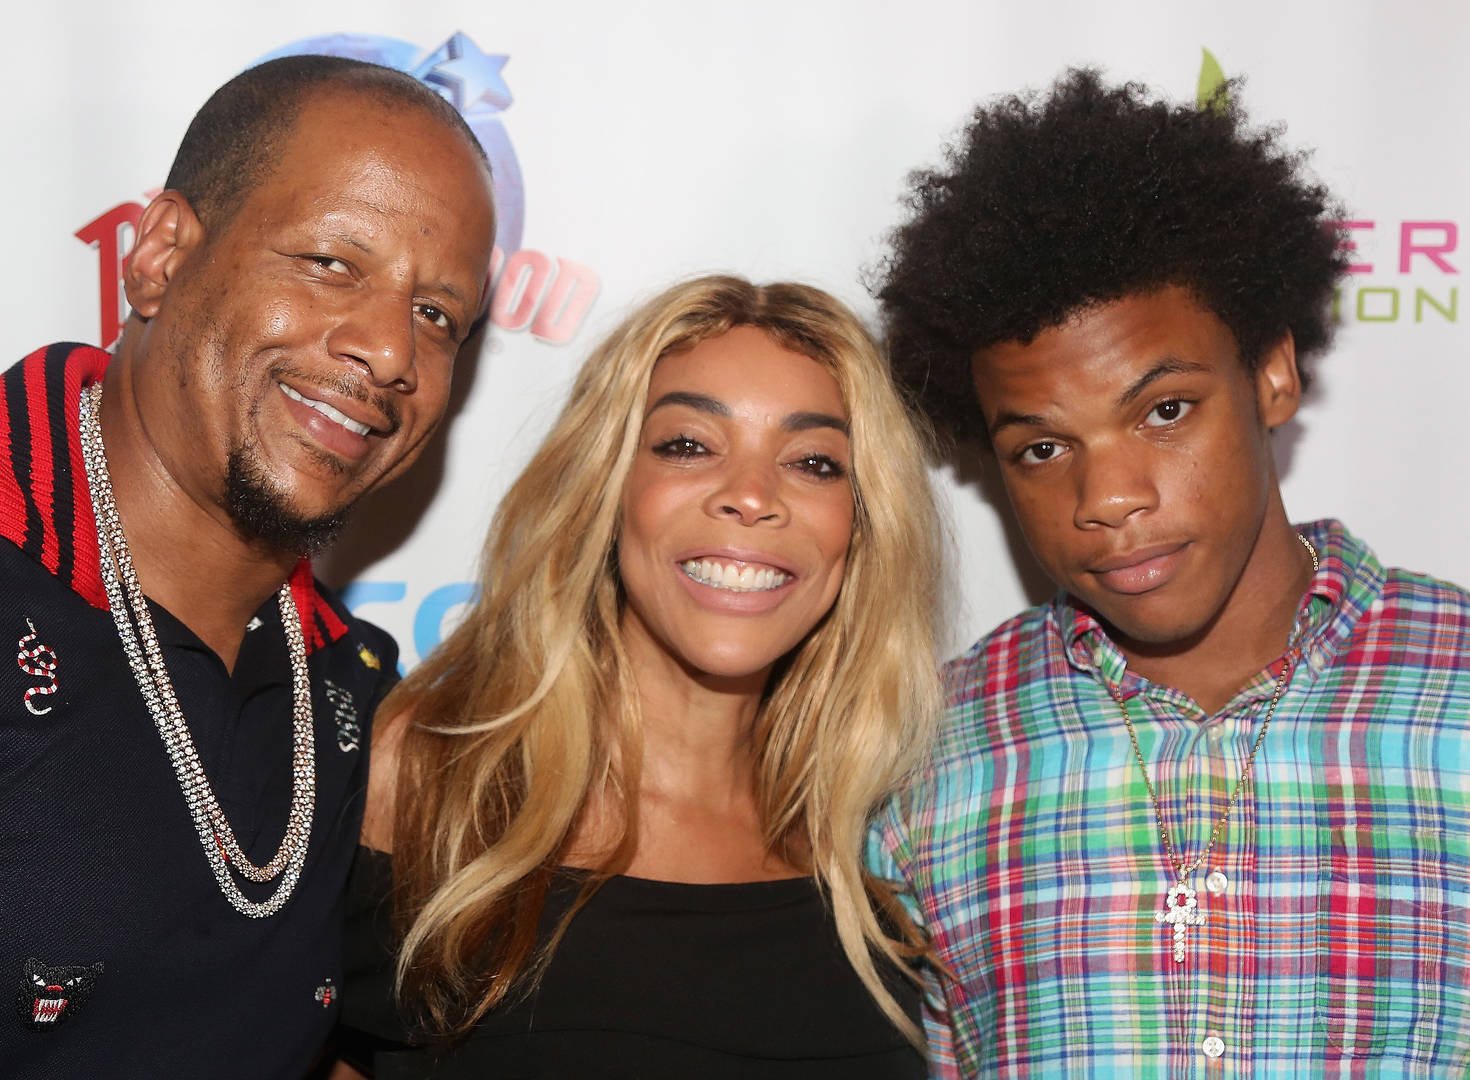 Wendy Williams Reportedly Has To Pay Ex Kevin Hunter $250K To Find New Home